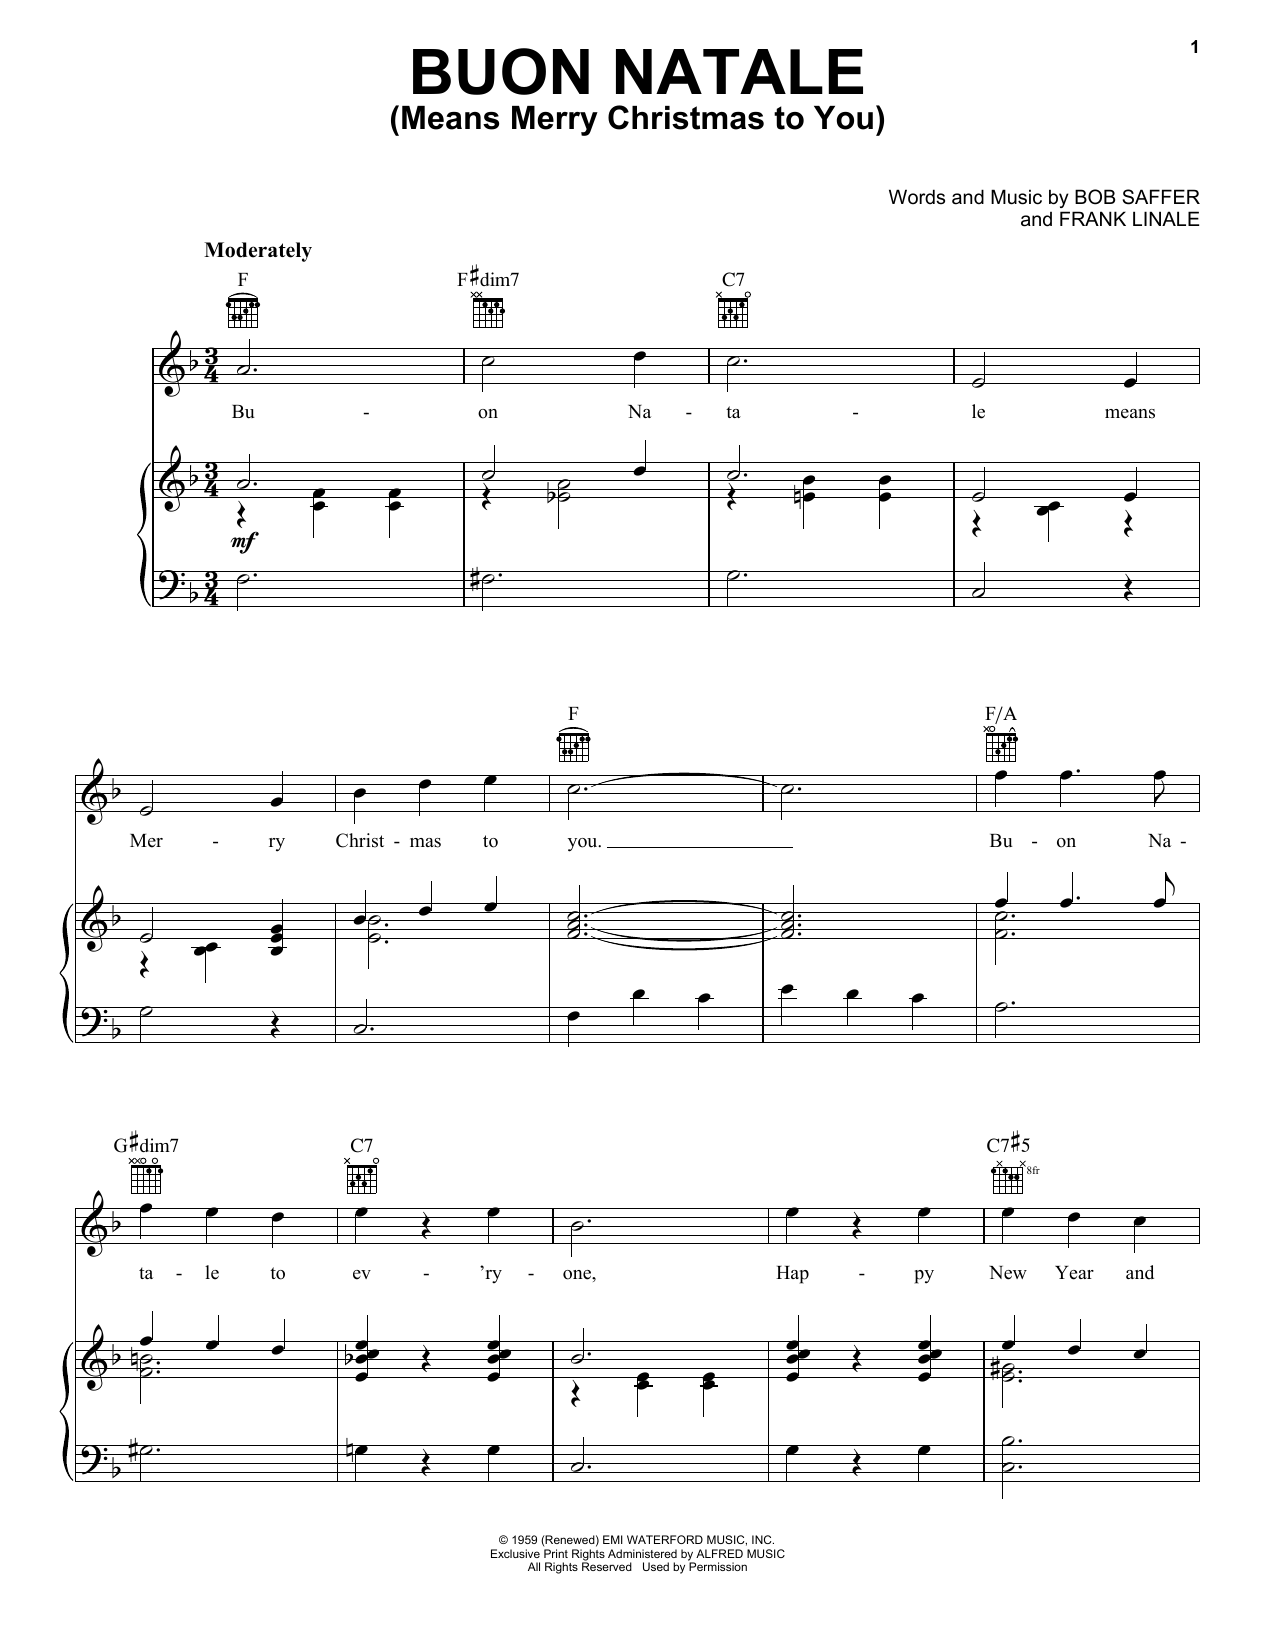 Buon Natale (Means Merry Christmas To You) Sheet Music